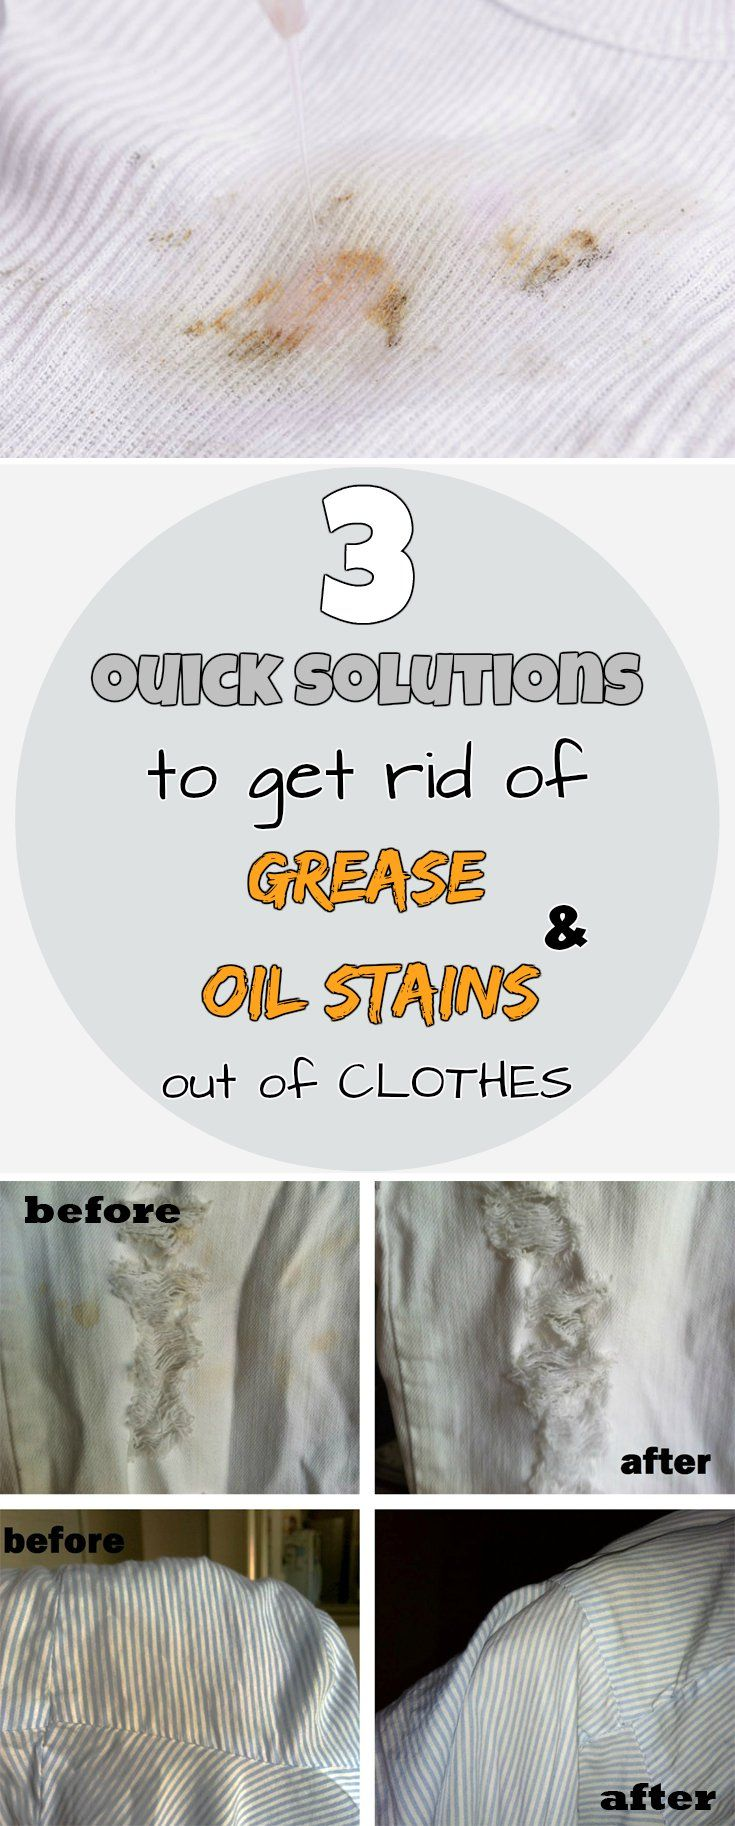 35a316bd88f4cd6f06255791b66130fb - How To Get Rid Of Grease Stains On Clothes Fast